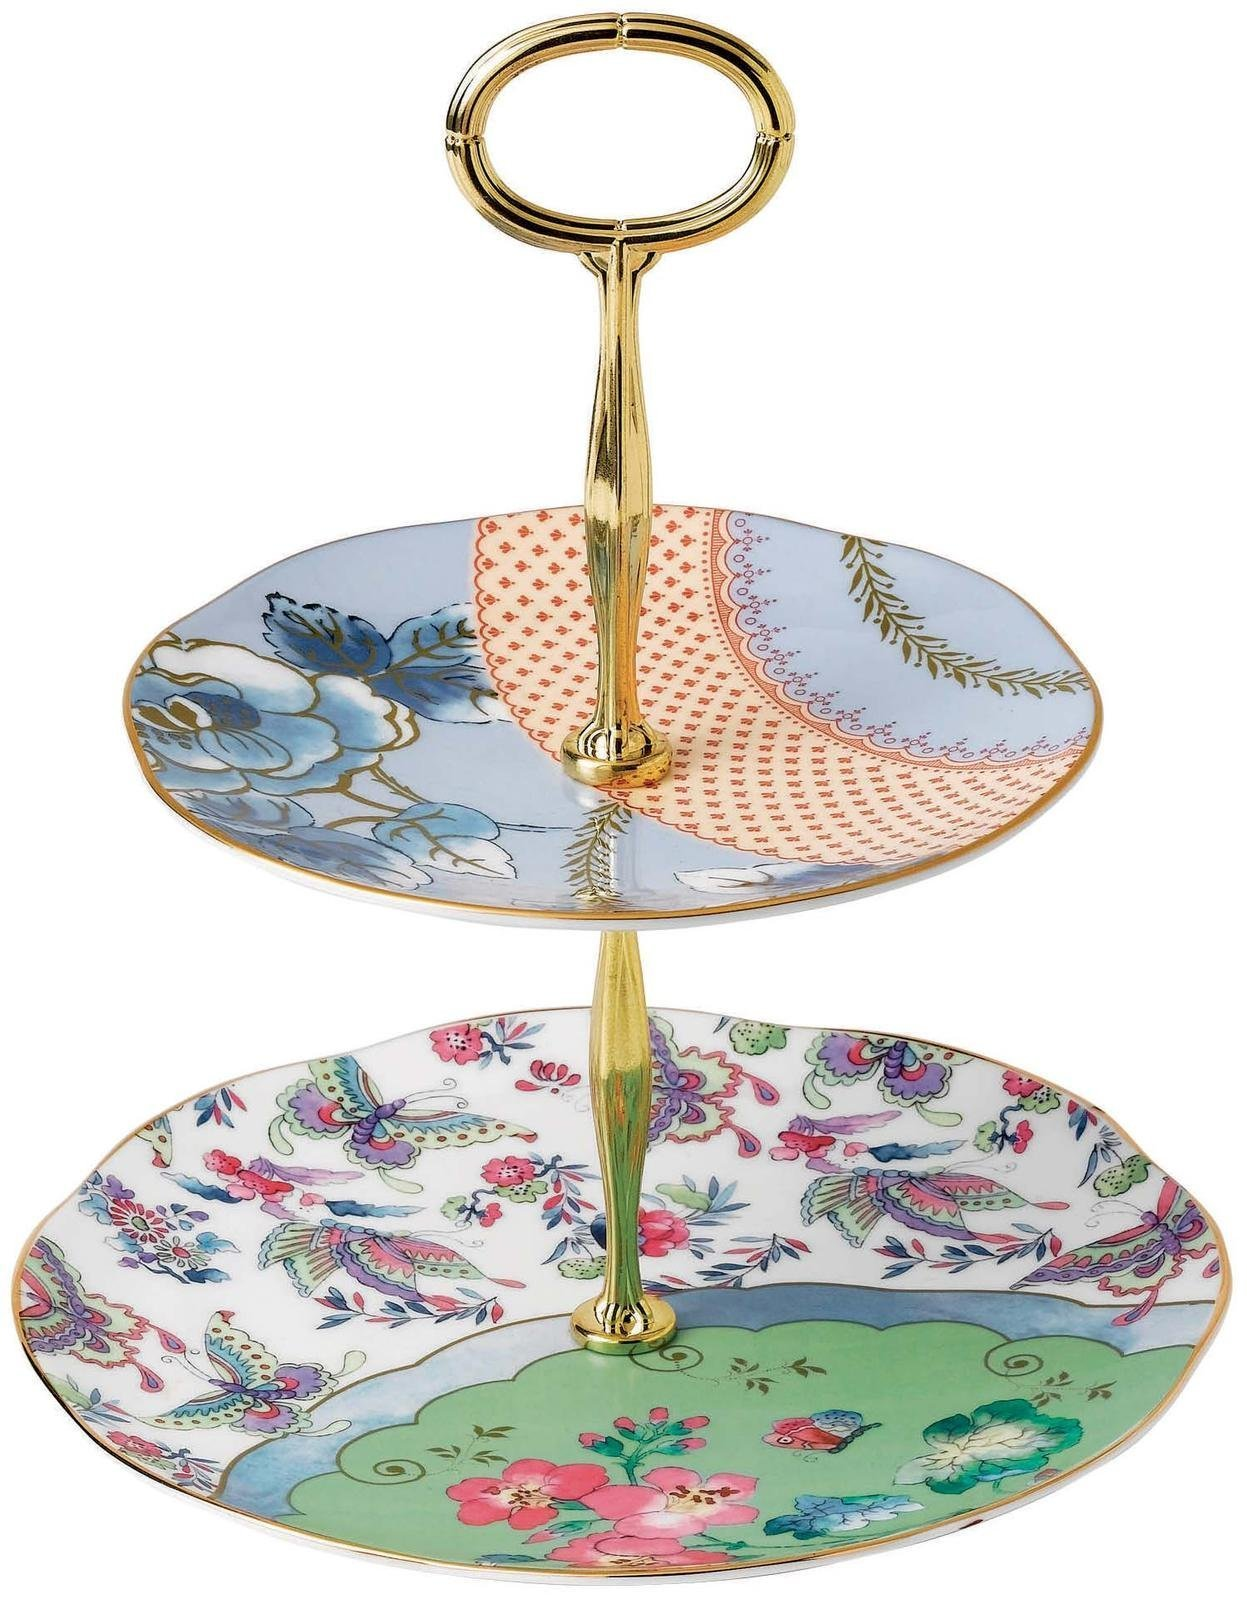 Wedgwood Butterfly Bloom Cake Stand Two-Tier